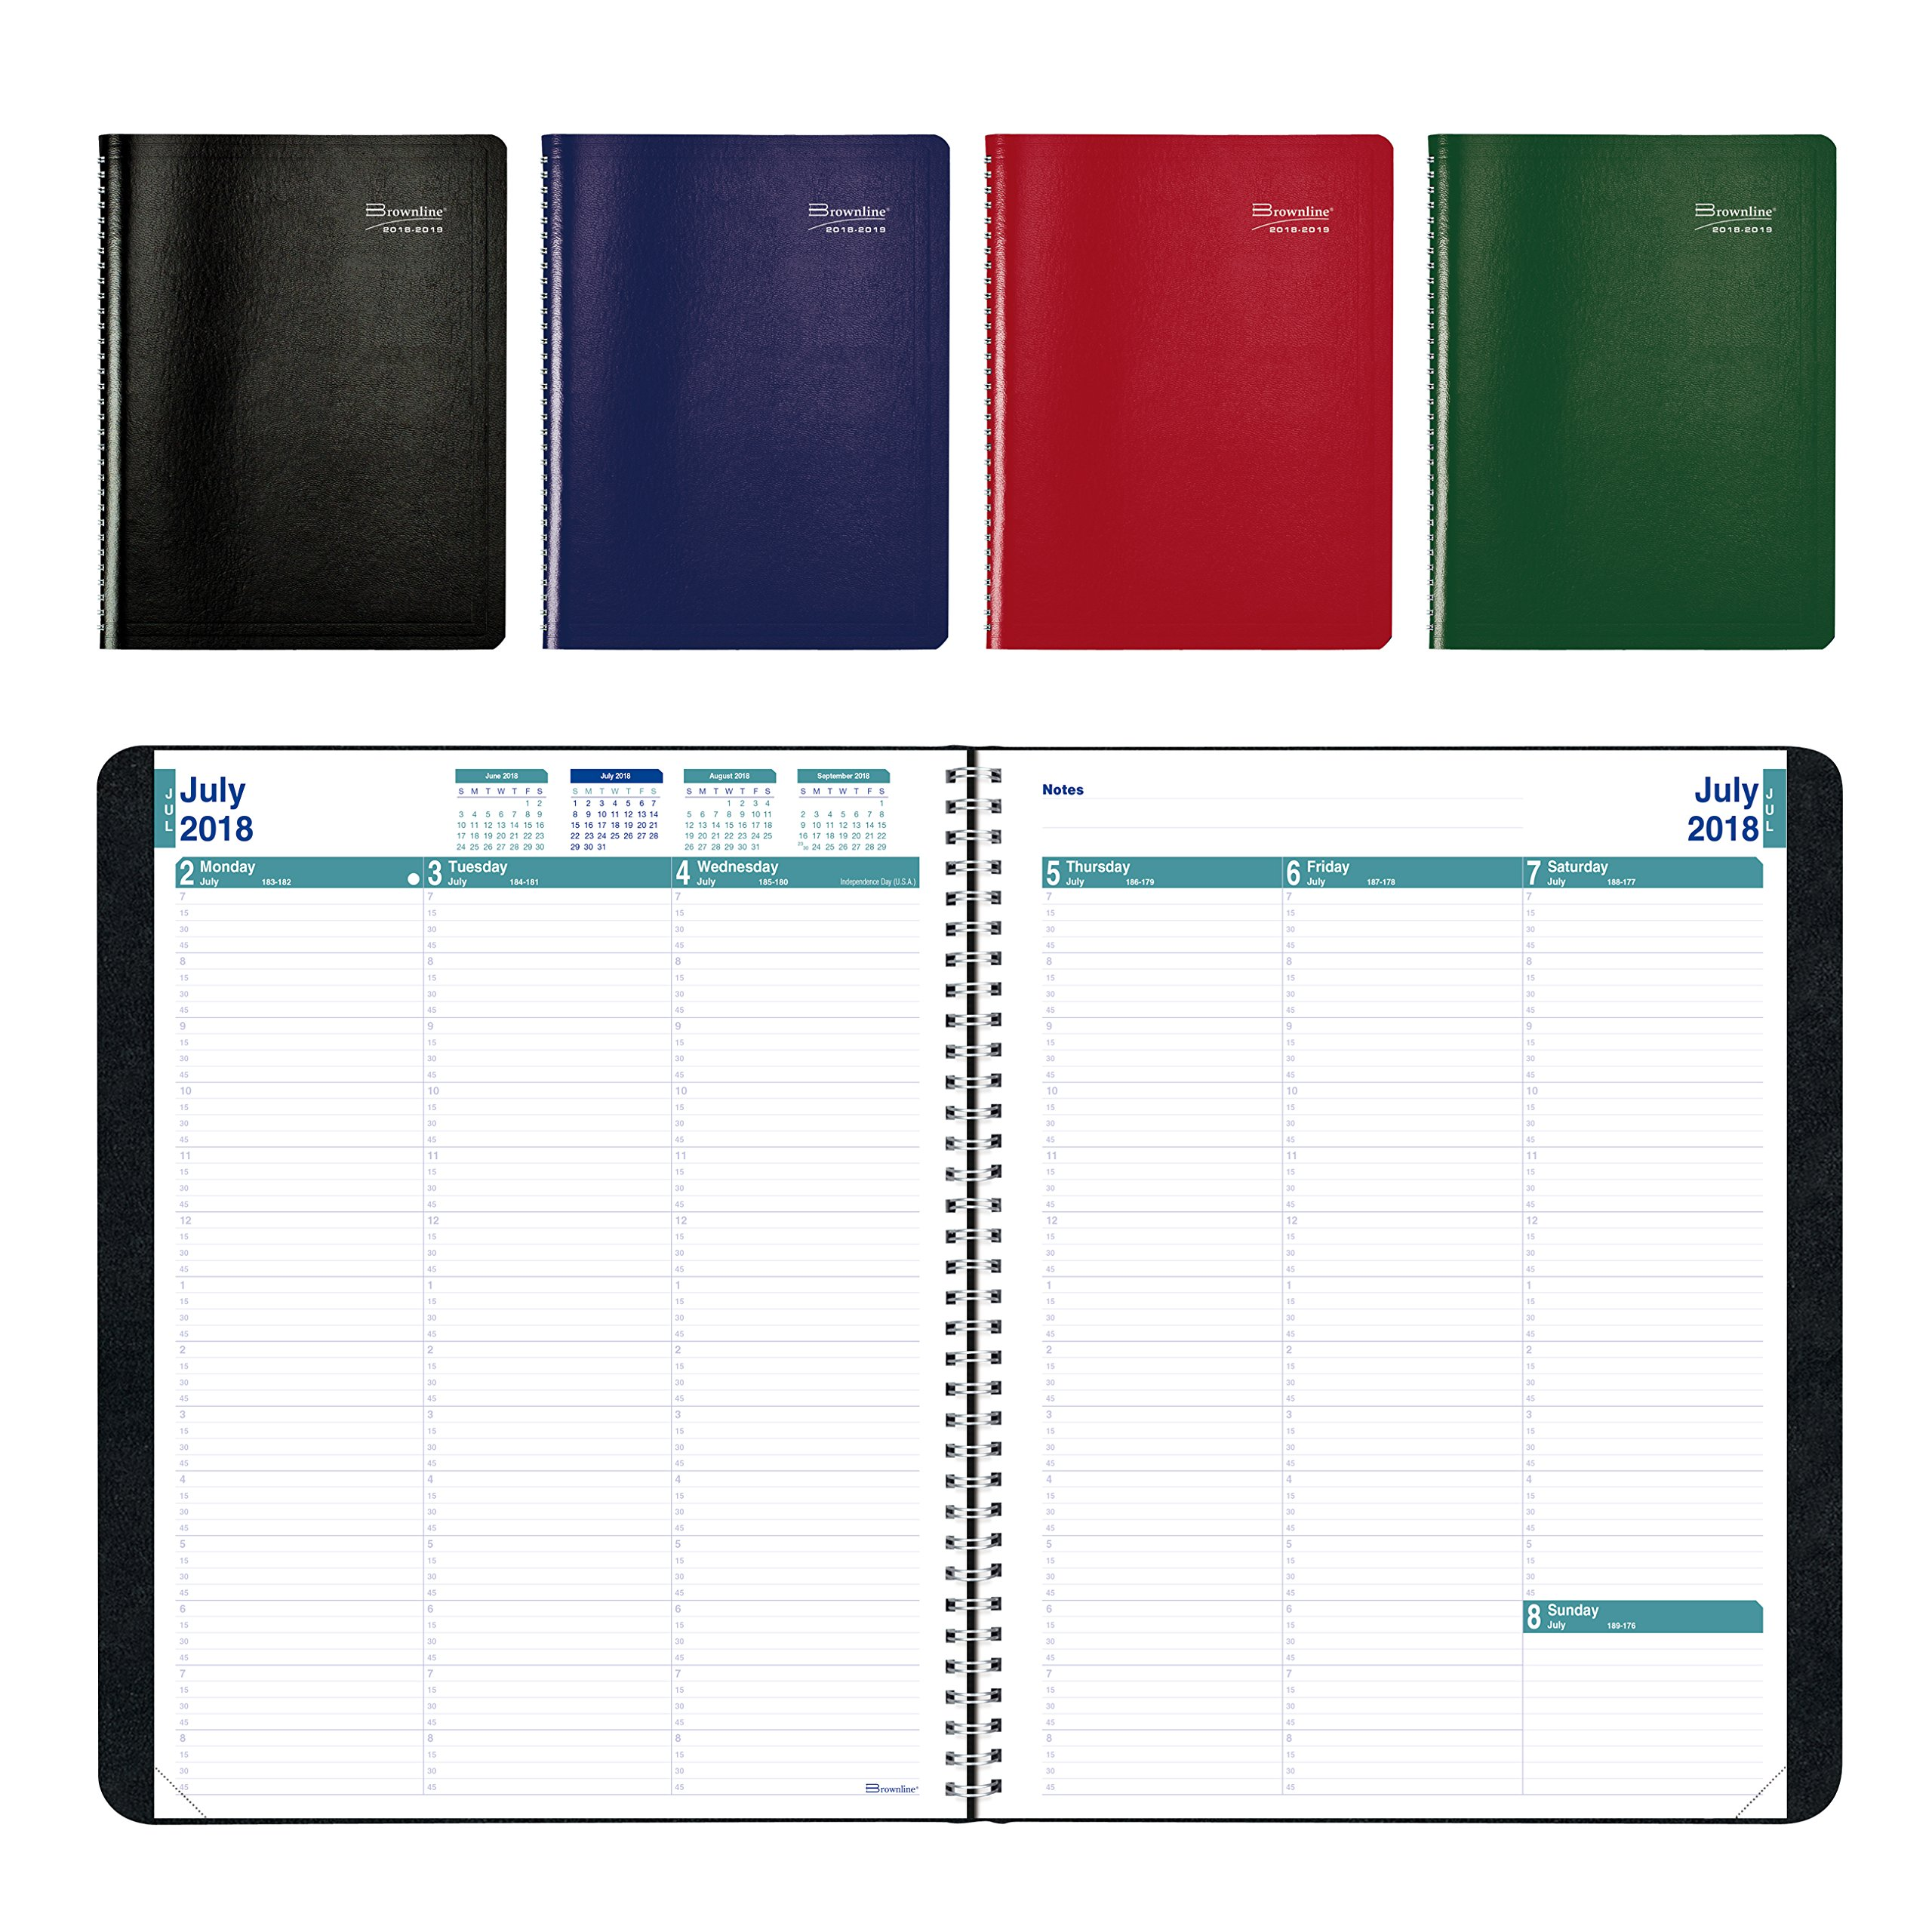 Brownline 2018-2019 Weekly/Monthly Academic Planner with Appointment, 11 x 8.5 inches, July 2018 to July 2019, 13 Months, Assorted Colors (CA958.ASX-19)